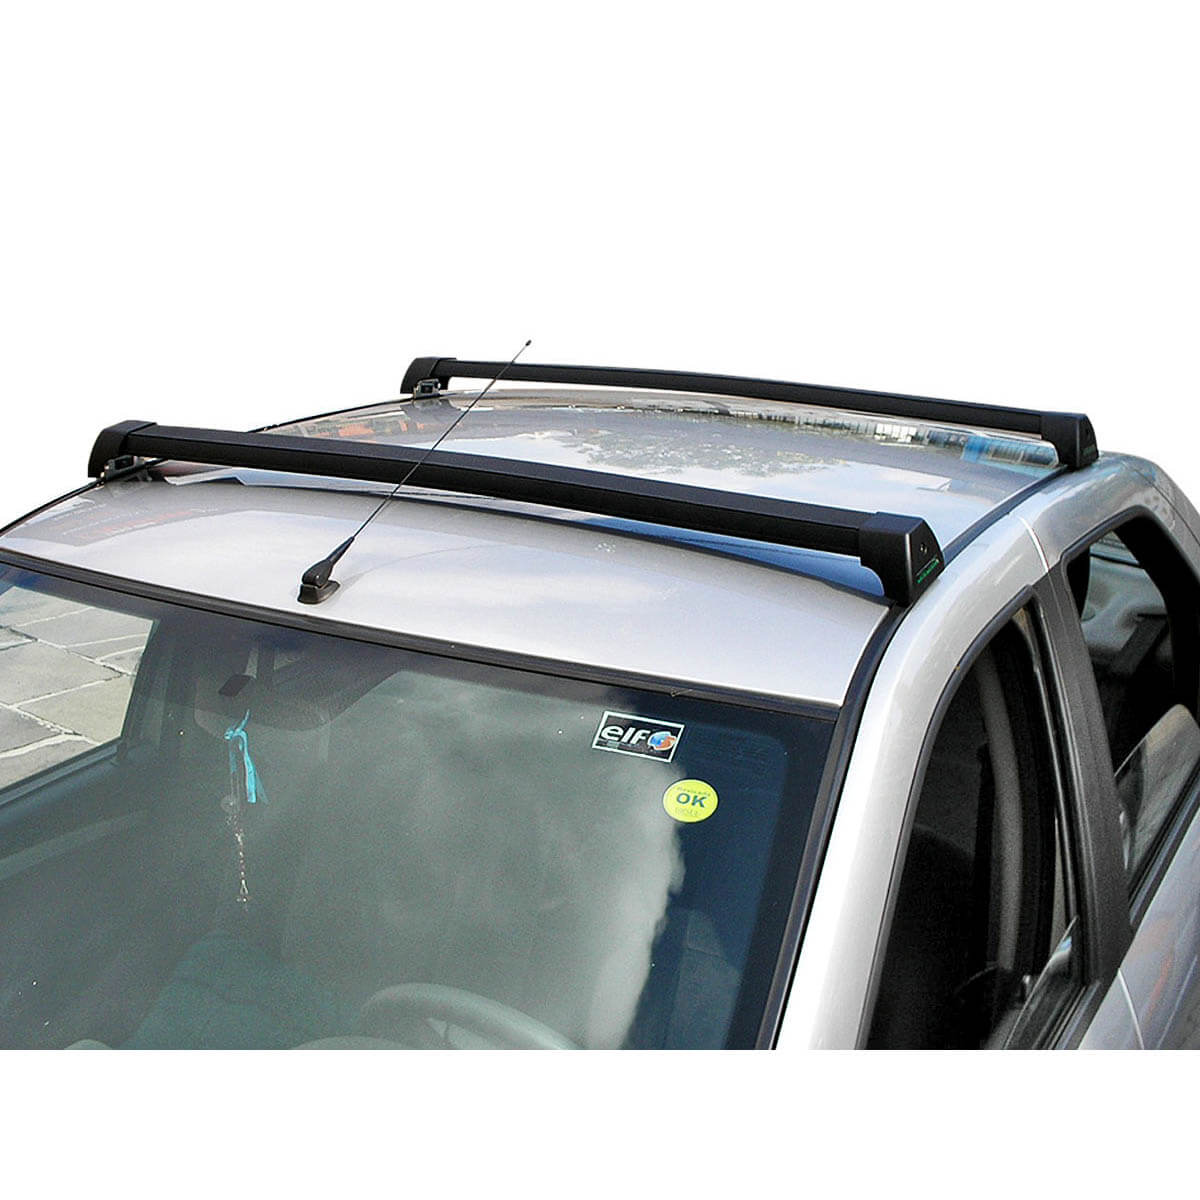 Rack de teto Peugeot 307 2001 a 2012 Long Life Sports preto